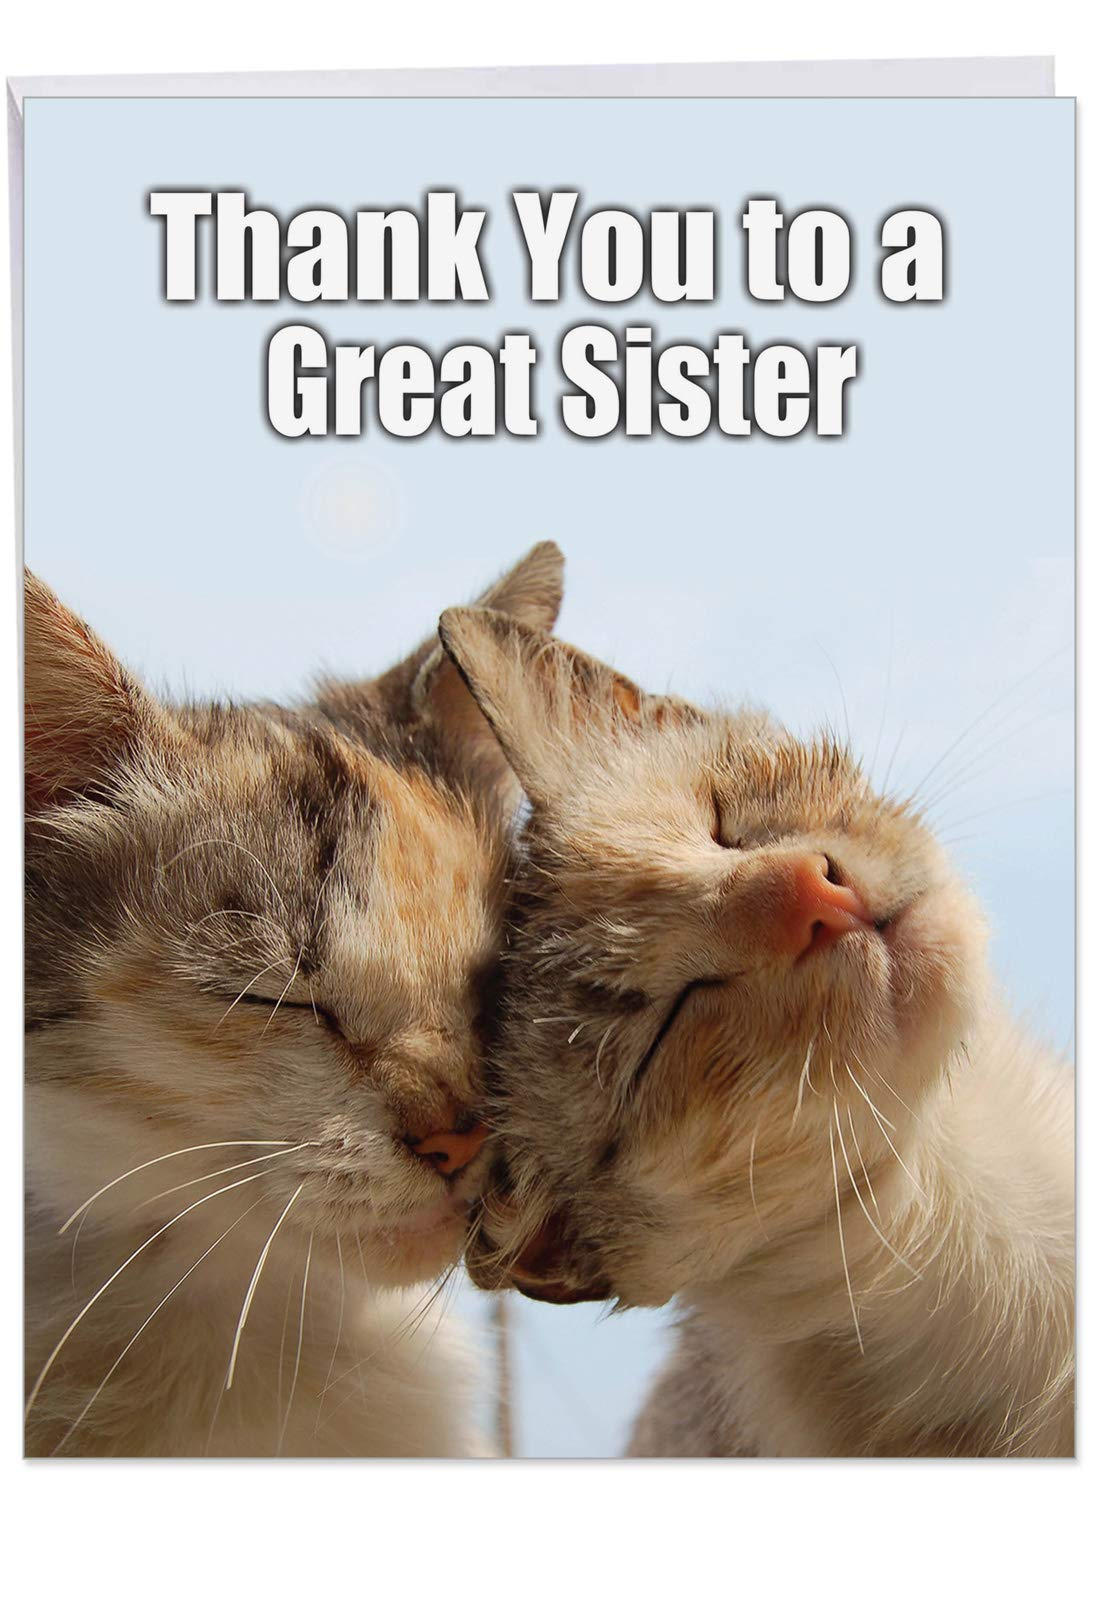 Cute Cat Thank You Card with Envelope 8.5 x 11 Inch - Big 'Thank You to a Great Sister' Greeting Card - Large Appreciation Stationery for Birthdays, Weddings, Holidays J9111